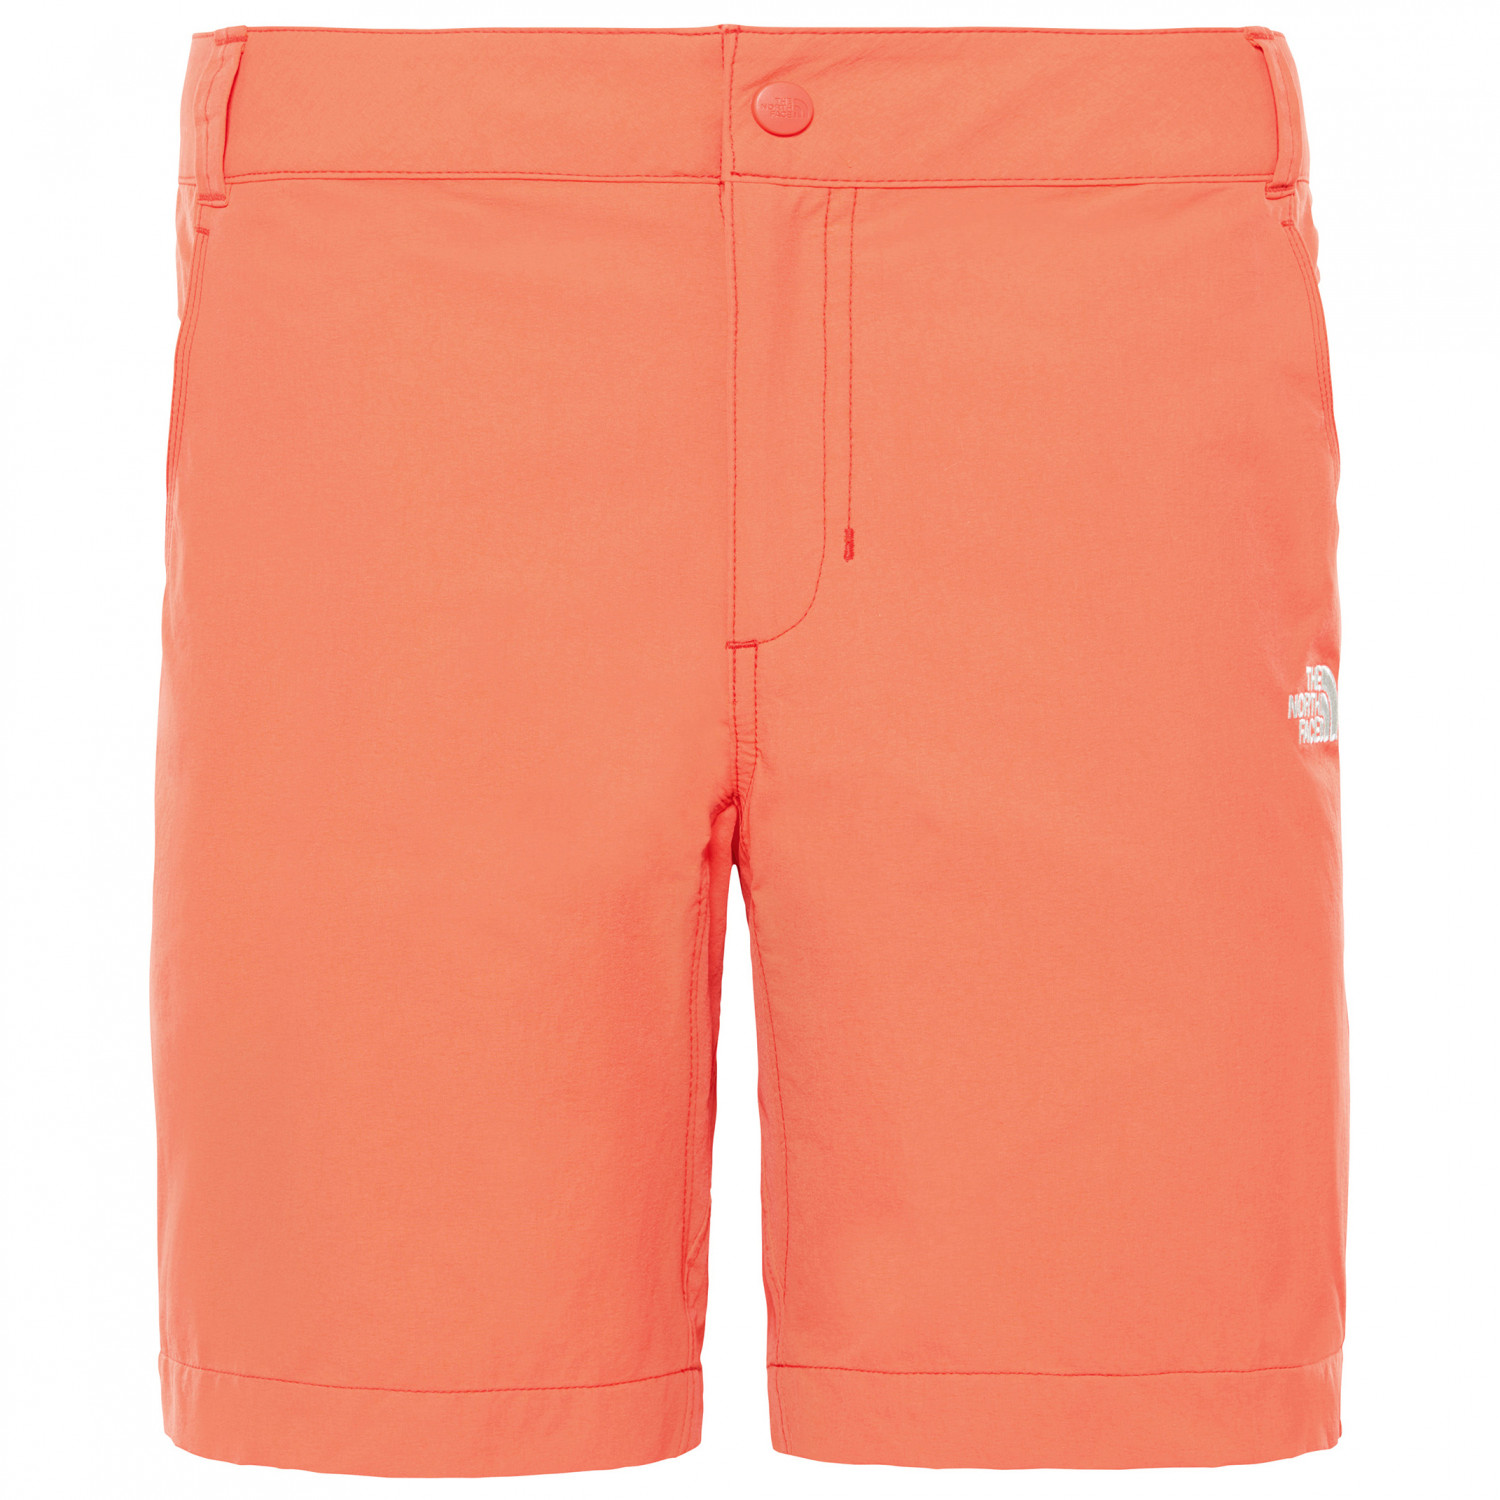 3f3d1cf8e The North Face - Women's Exploration Short - Shorts - Juicy Red | 8 -  Regular (US)